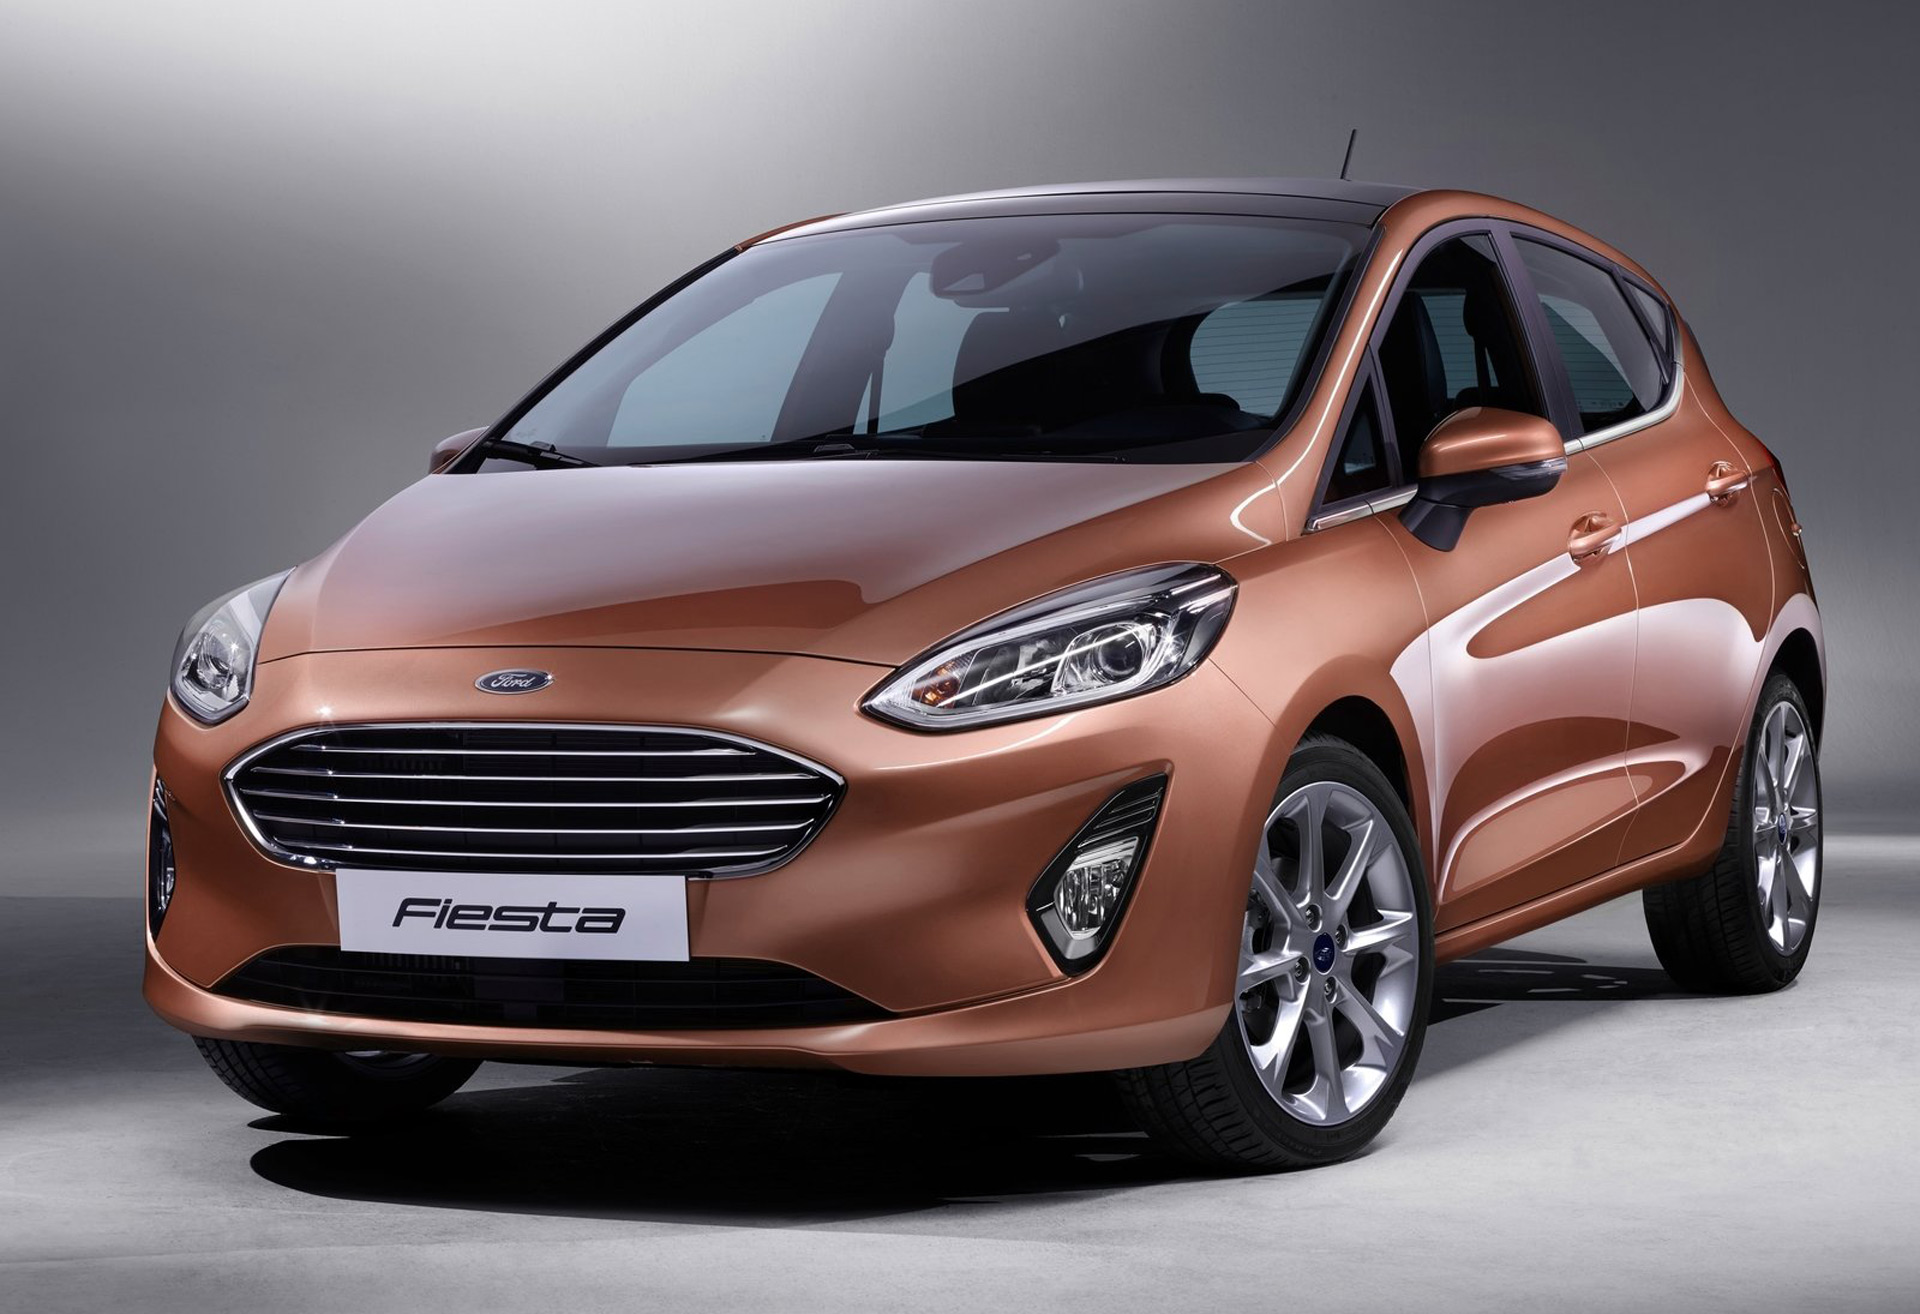 2018 ford fiesta minicar unveiled in europe u s plans unclear